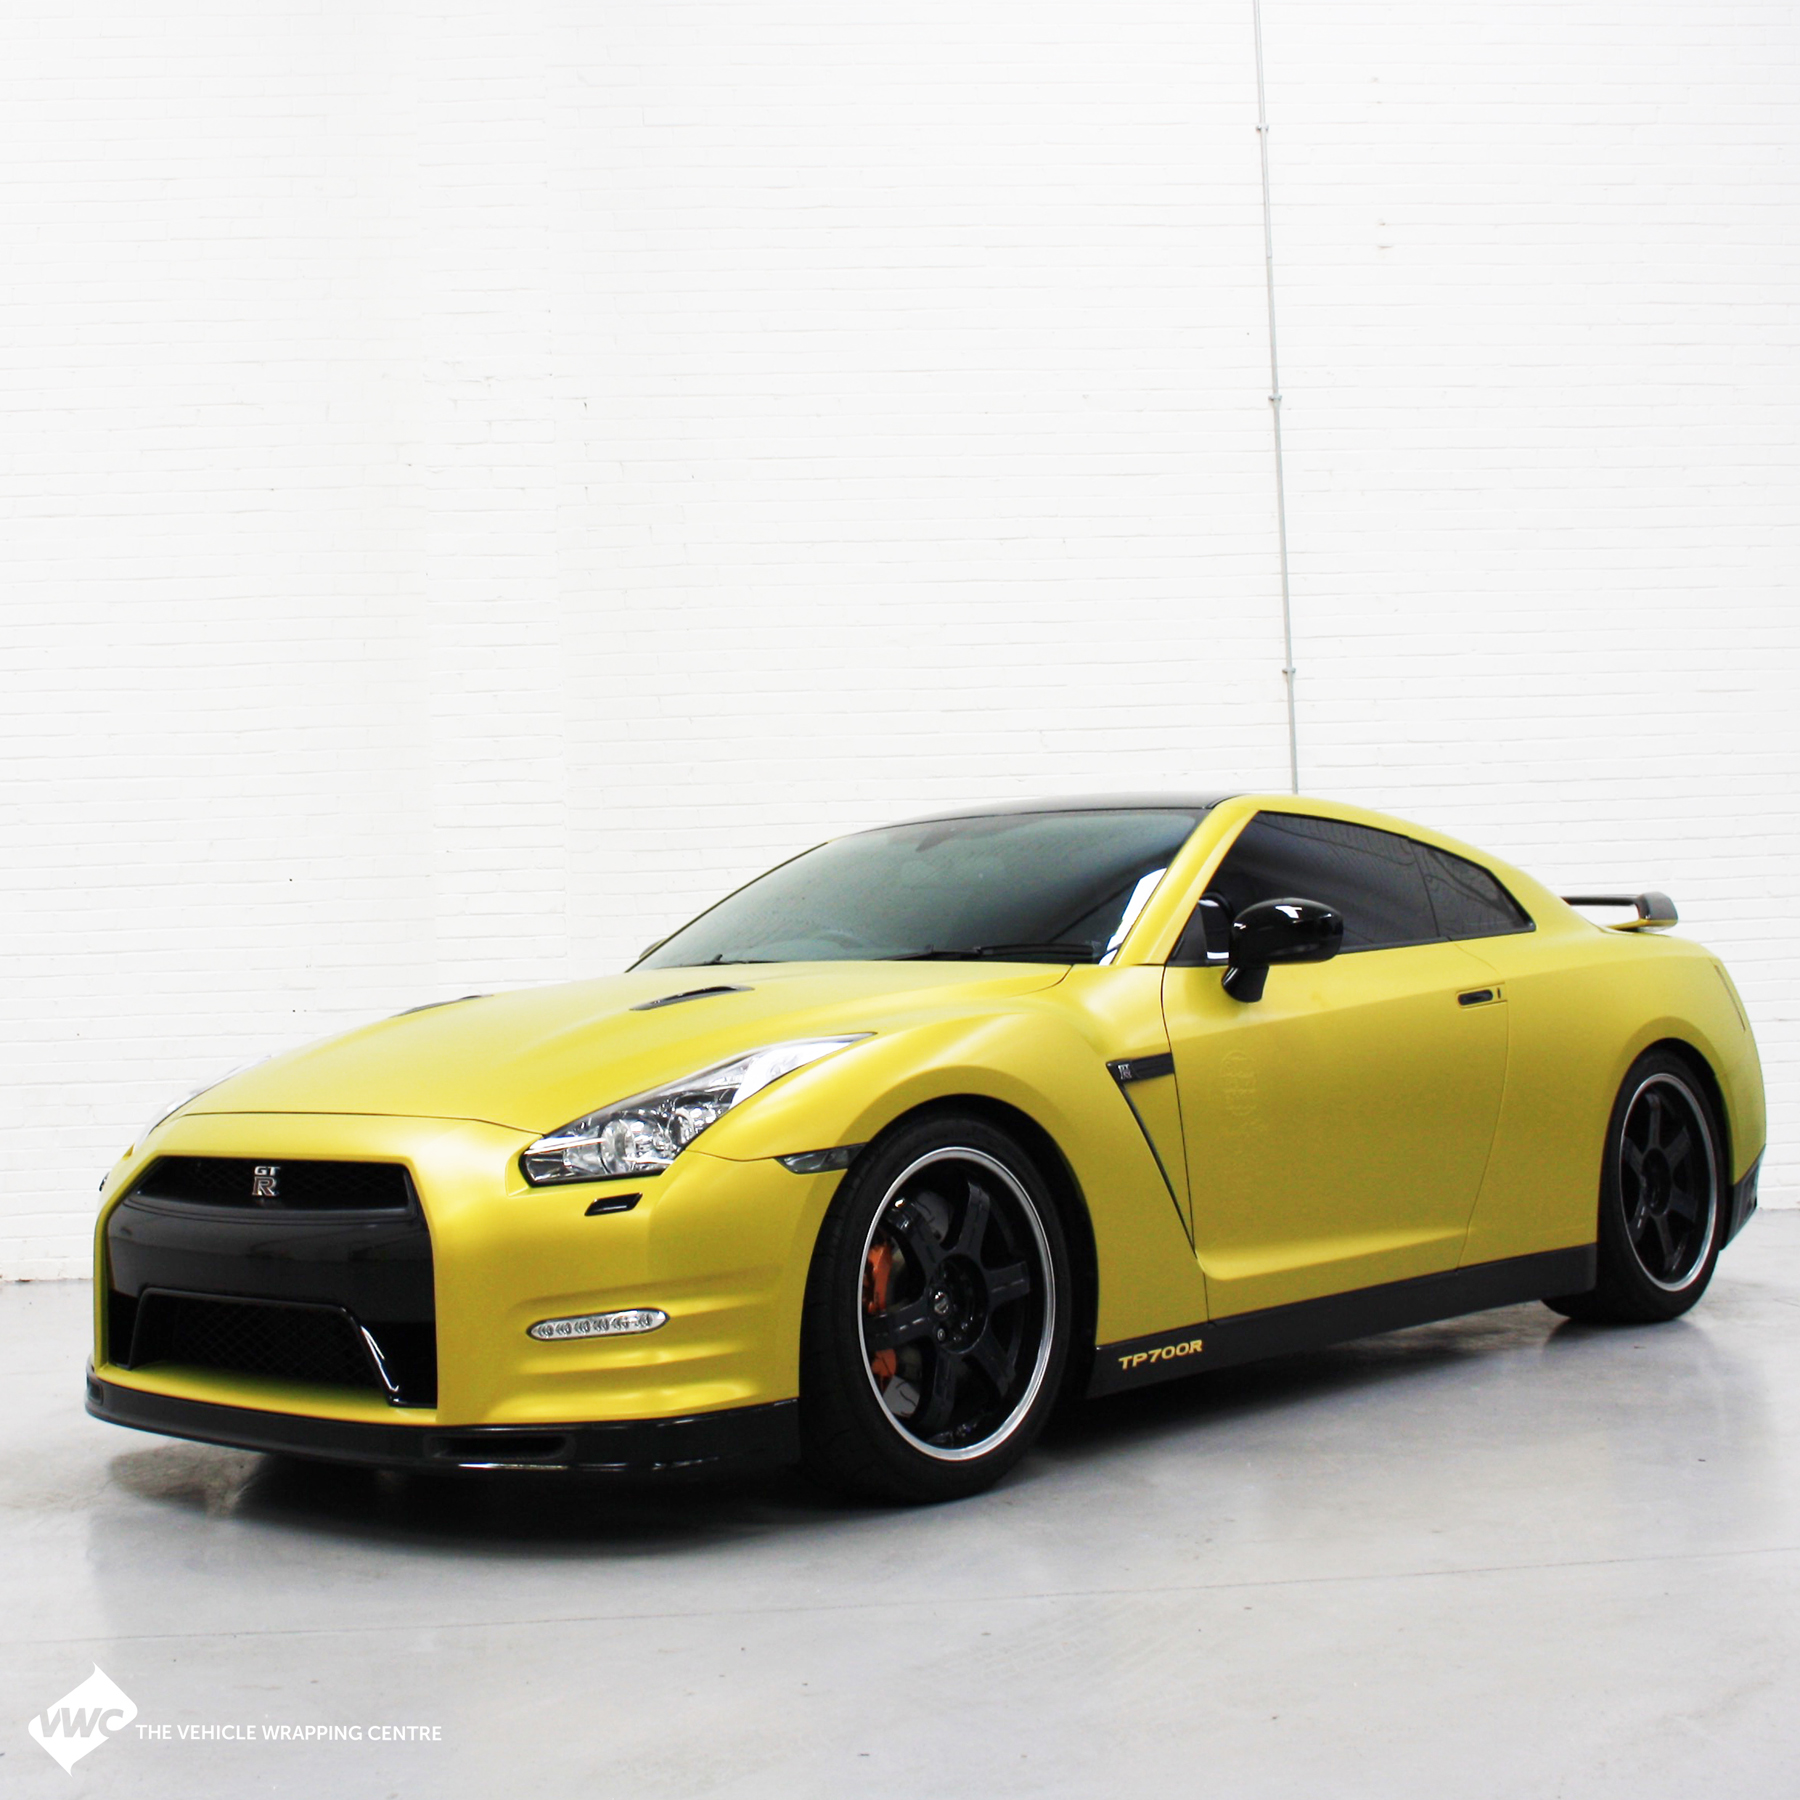 Nissan Gt R Yellow 3m Satin Bitter Yellow Personal Vehicle